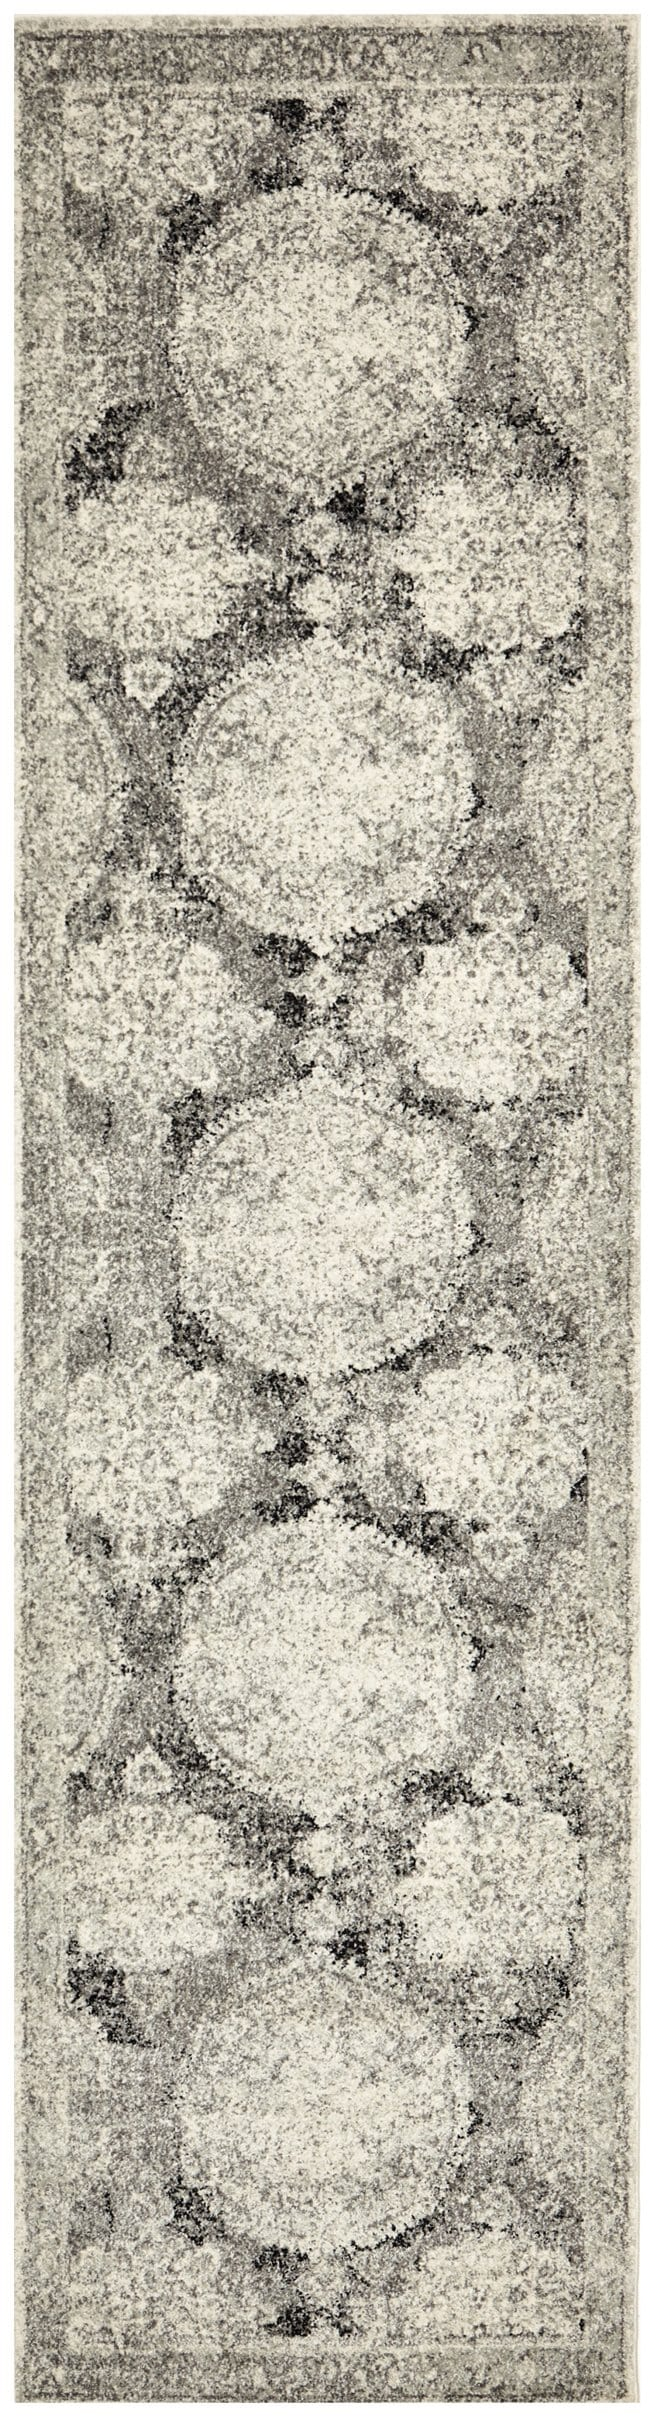 Balaken Cream and Charcoal Medallion Runner Rug